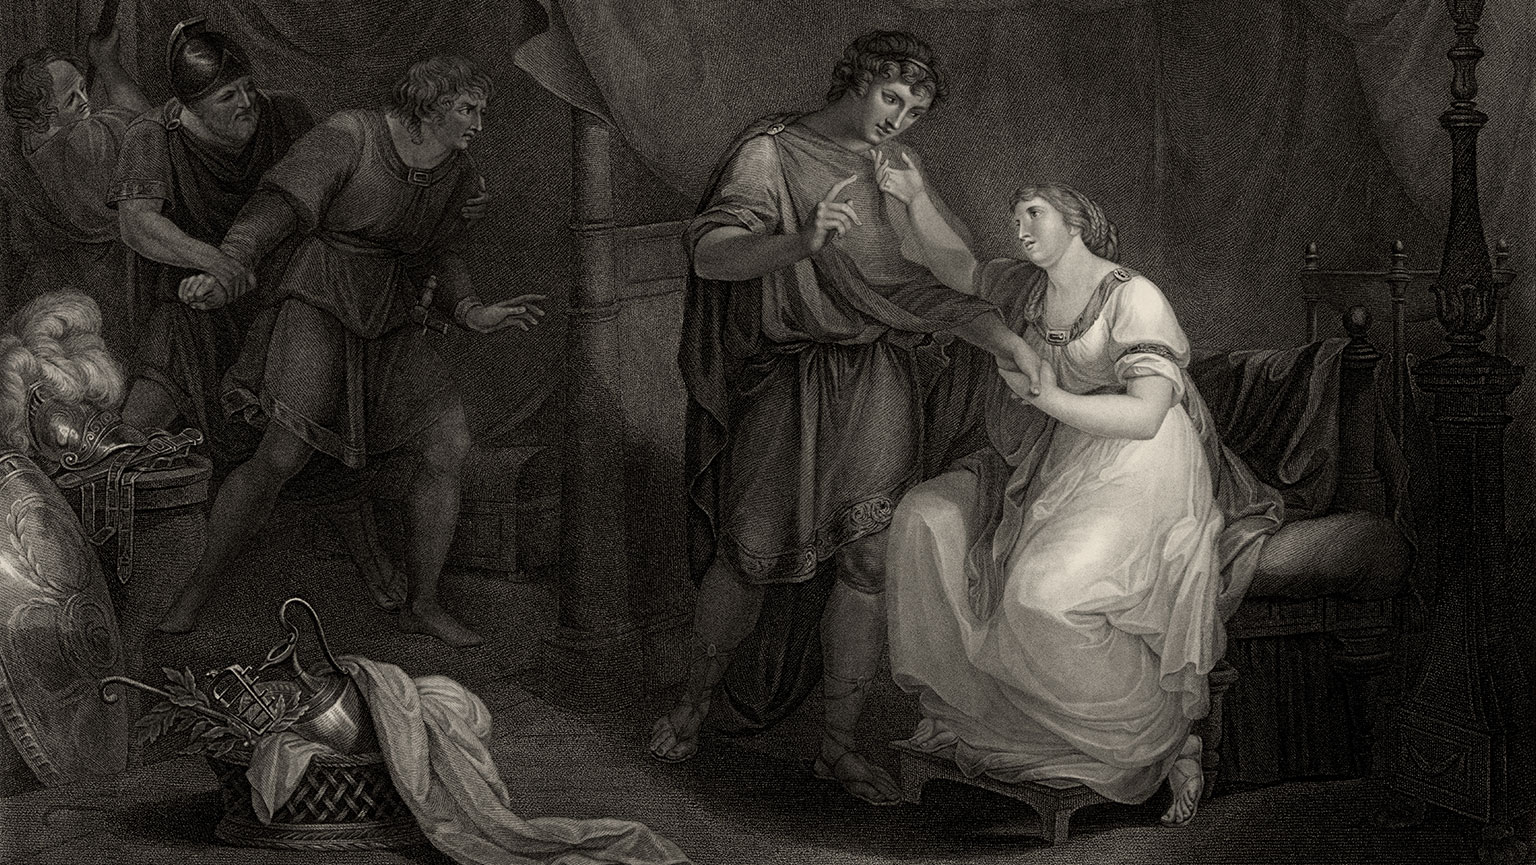 Troilus and Cressida—Heroic Aspirations